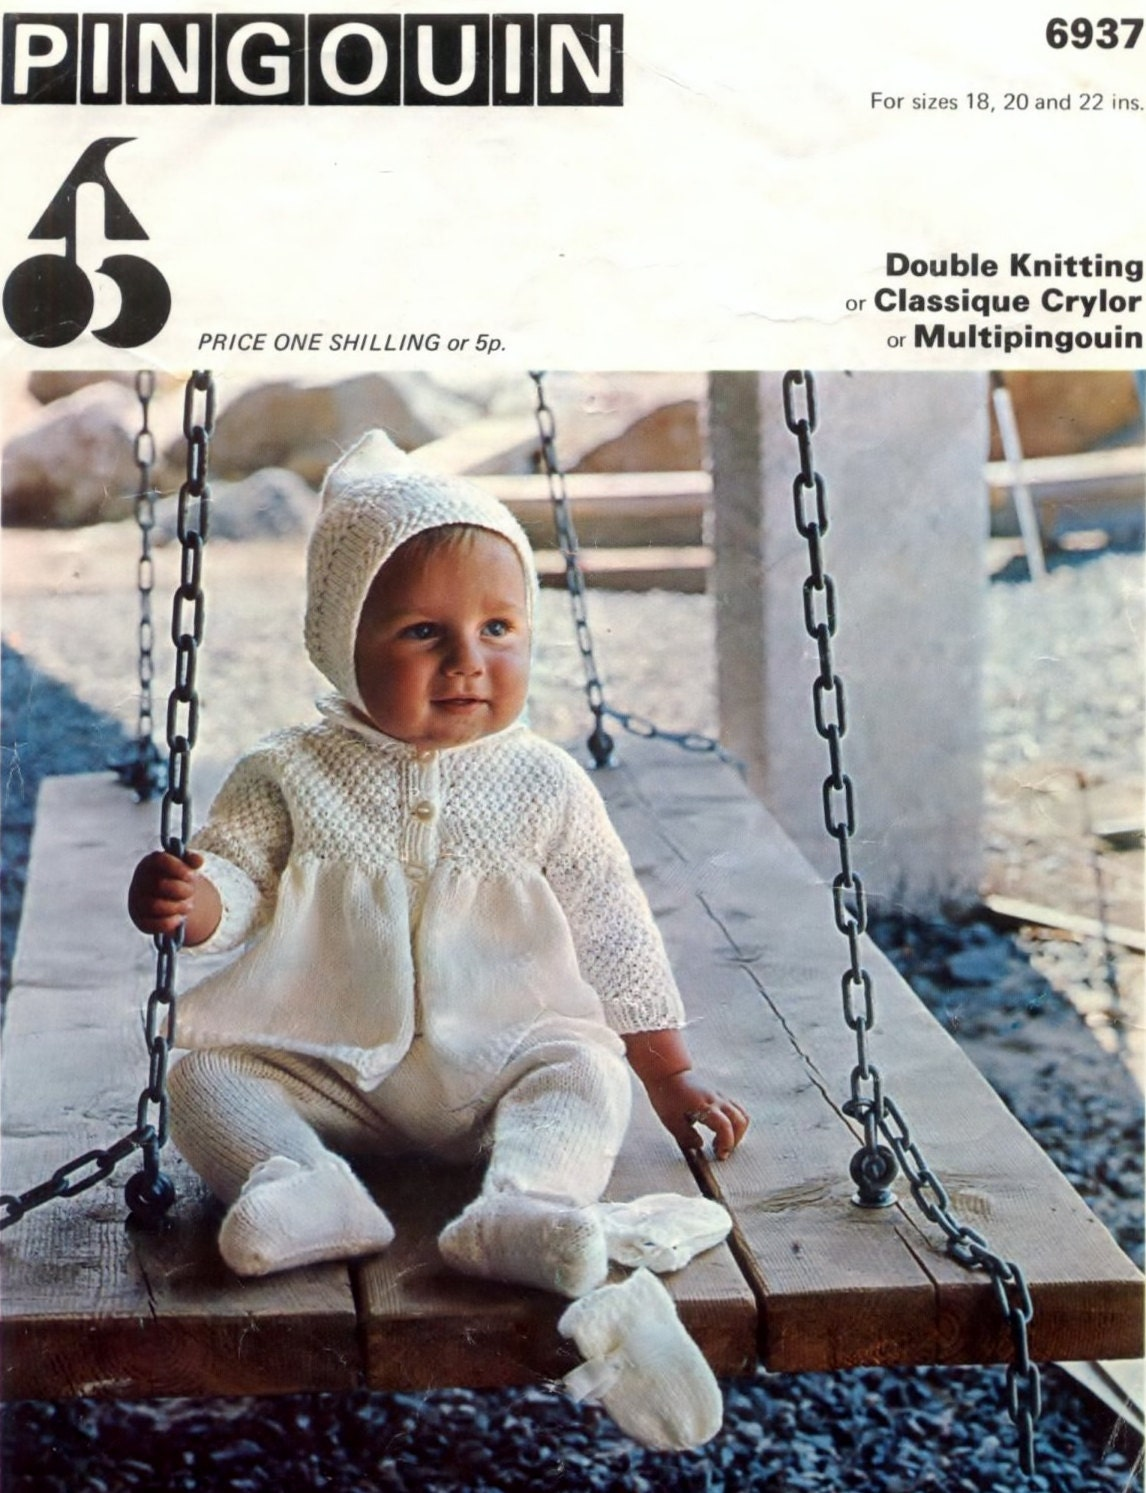 Free Knitting Pattern Cowl : Baby Coat, Leggings, Bonnet, Hood and Mittens 18 to 22 ins - Pingouin 6937 - ...